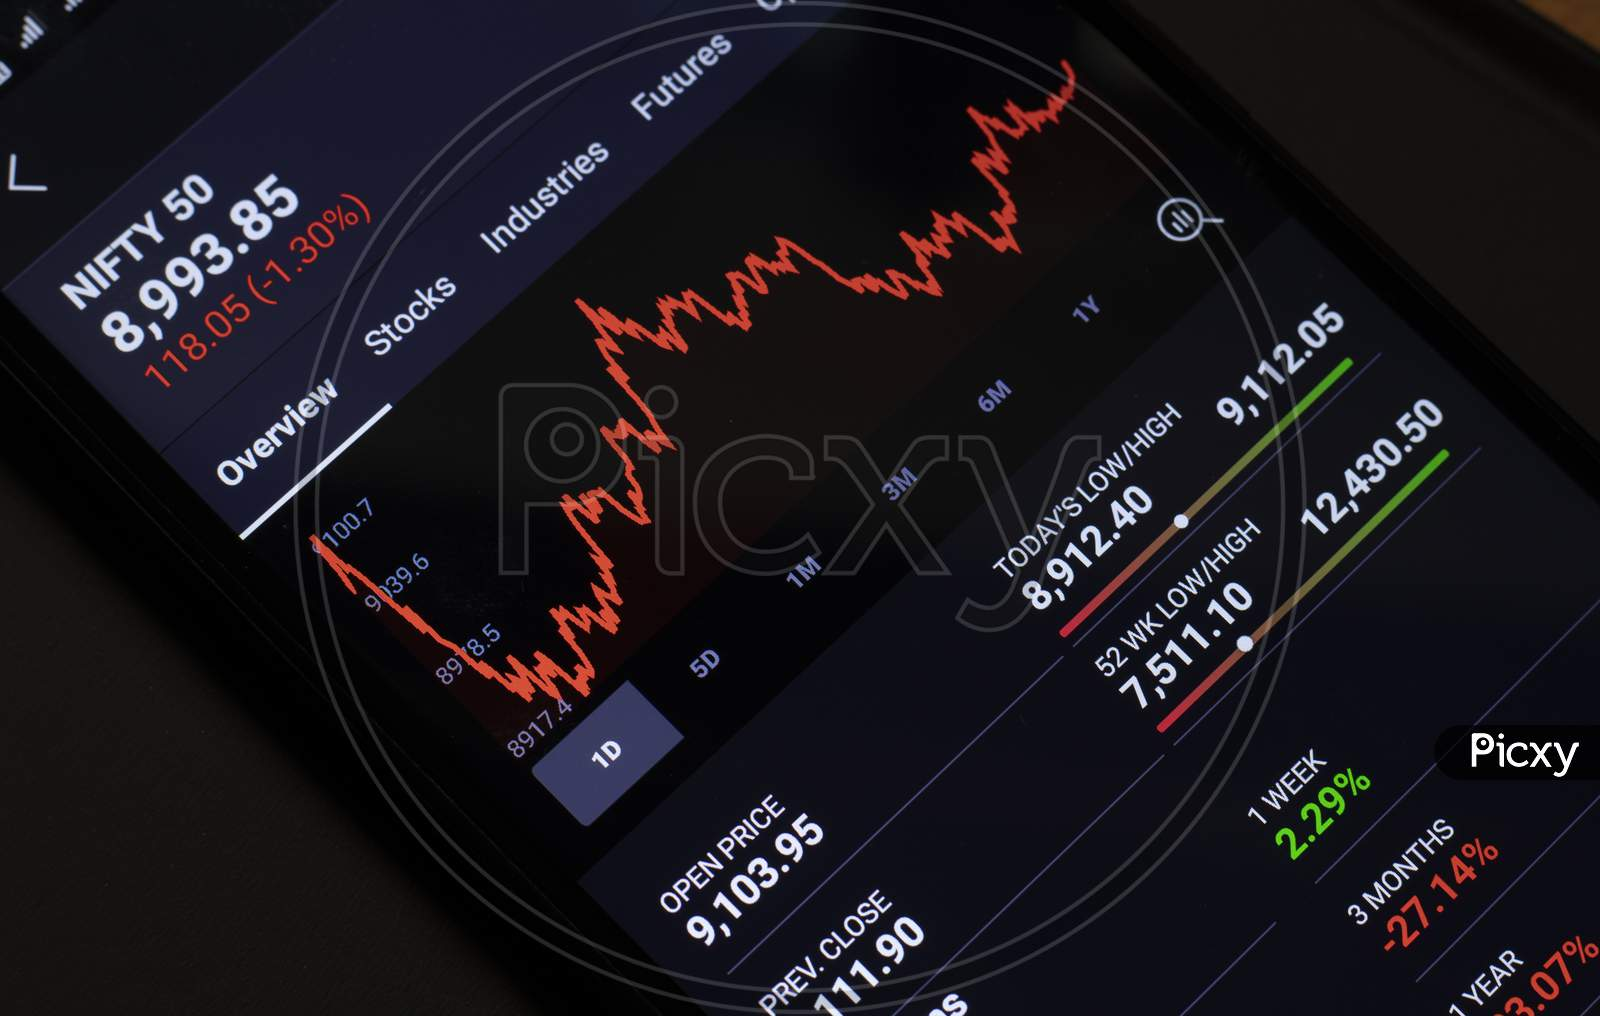 Crash In Nifty 50 Share Market On Mobile During Covid-19 Lockdown.